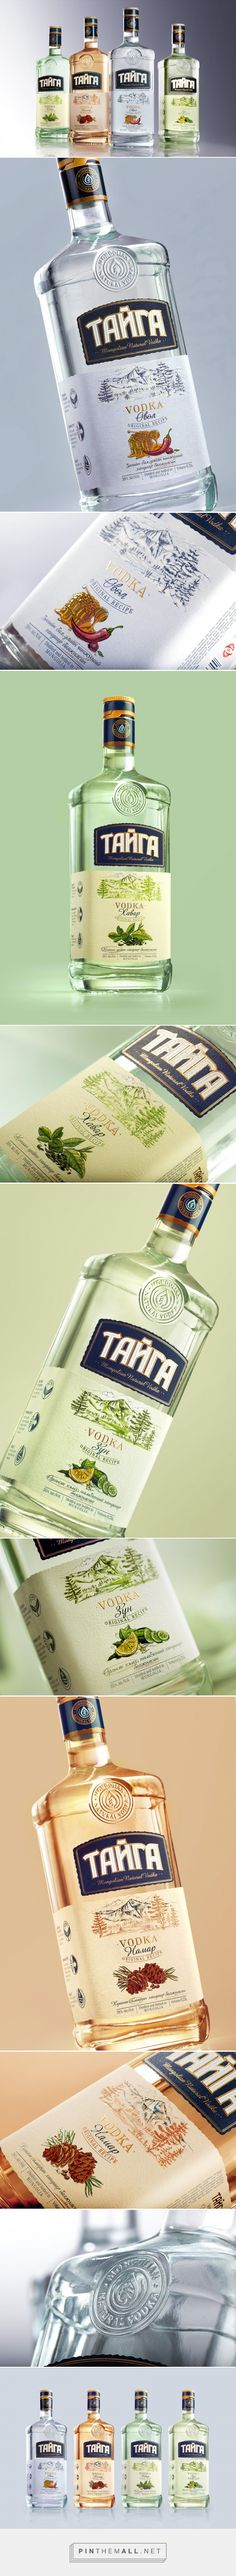 Taiga Vodka - Packaging of the World - Creative Package Design Gallery - http://www.packagingoftheworld.com/2016/12/taiga-vodka.html